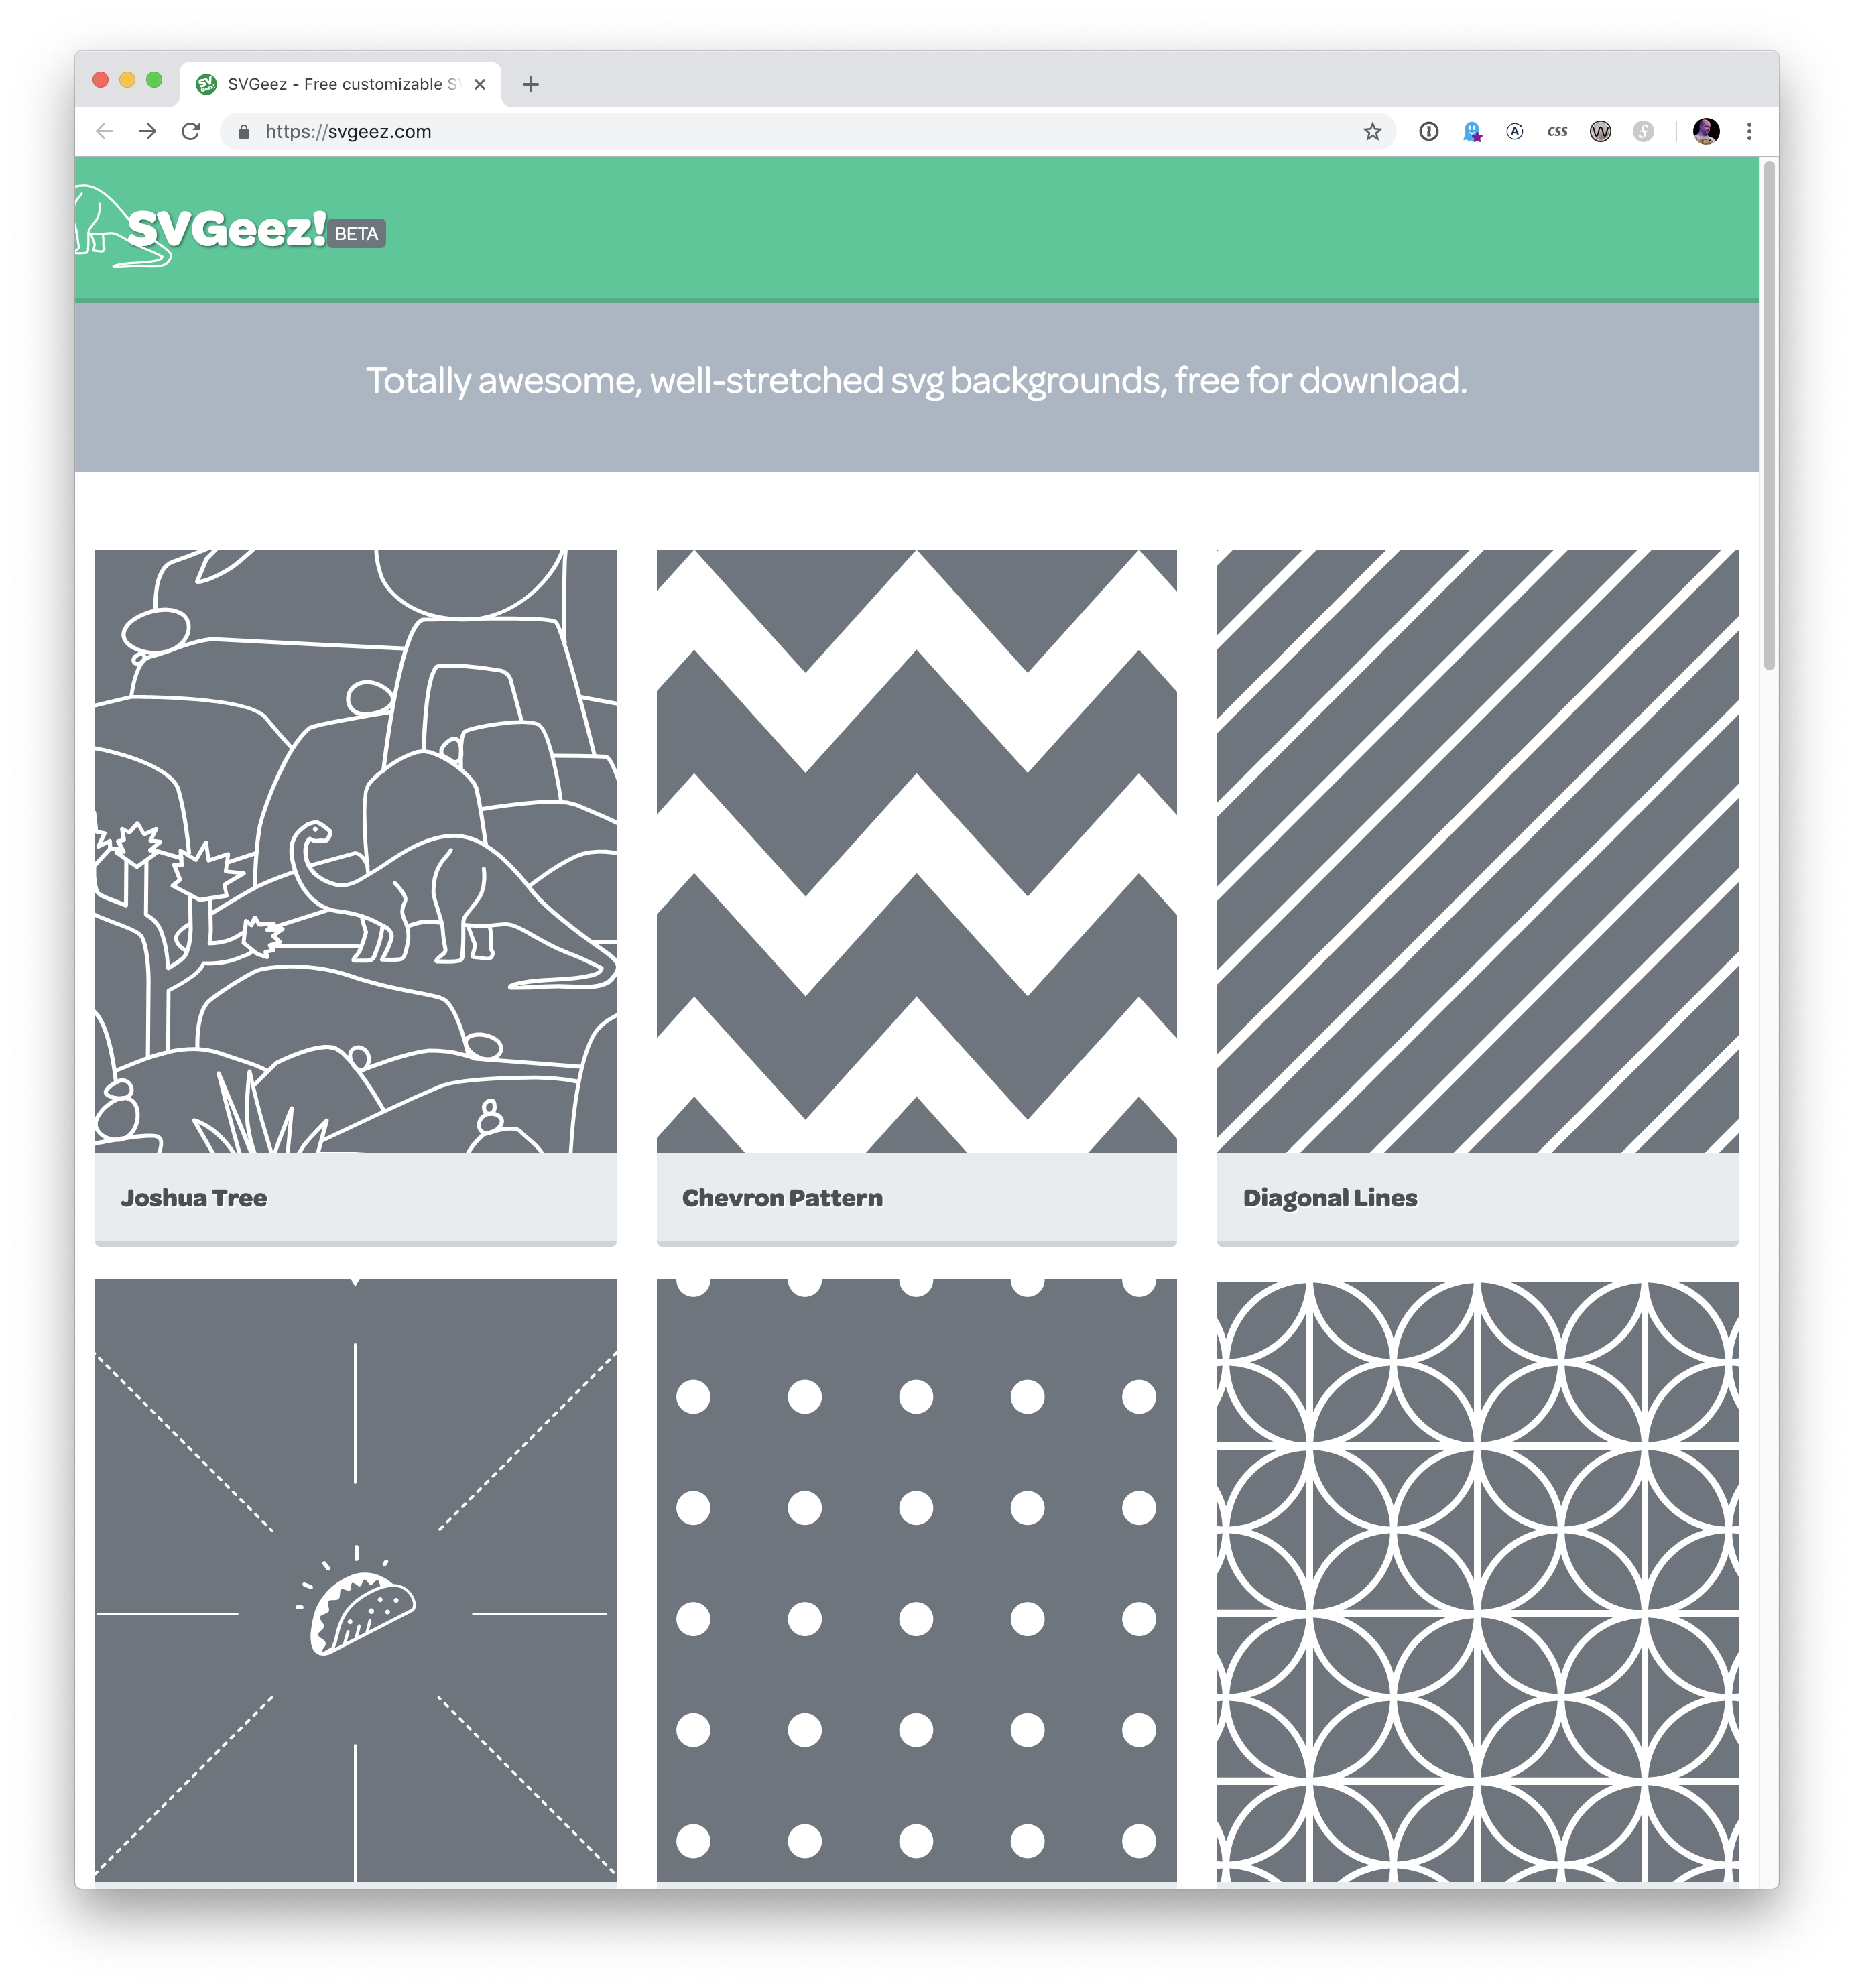 Websites to Generate SVG Patterns | CSS-Tricks